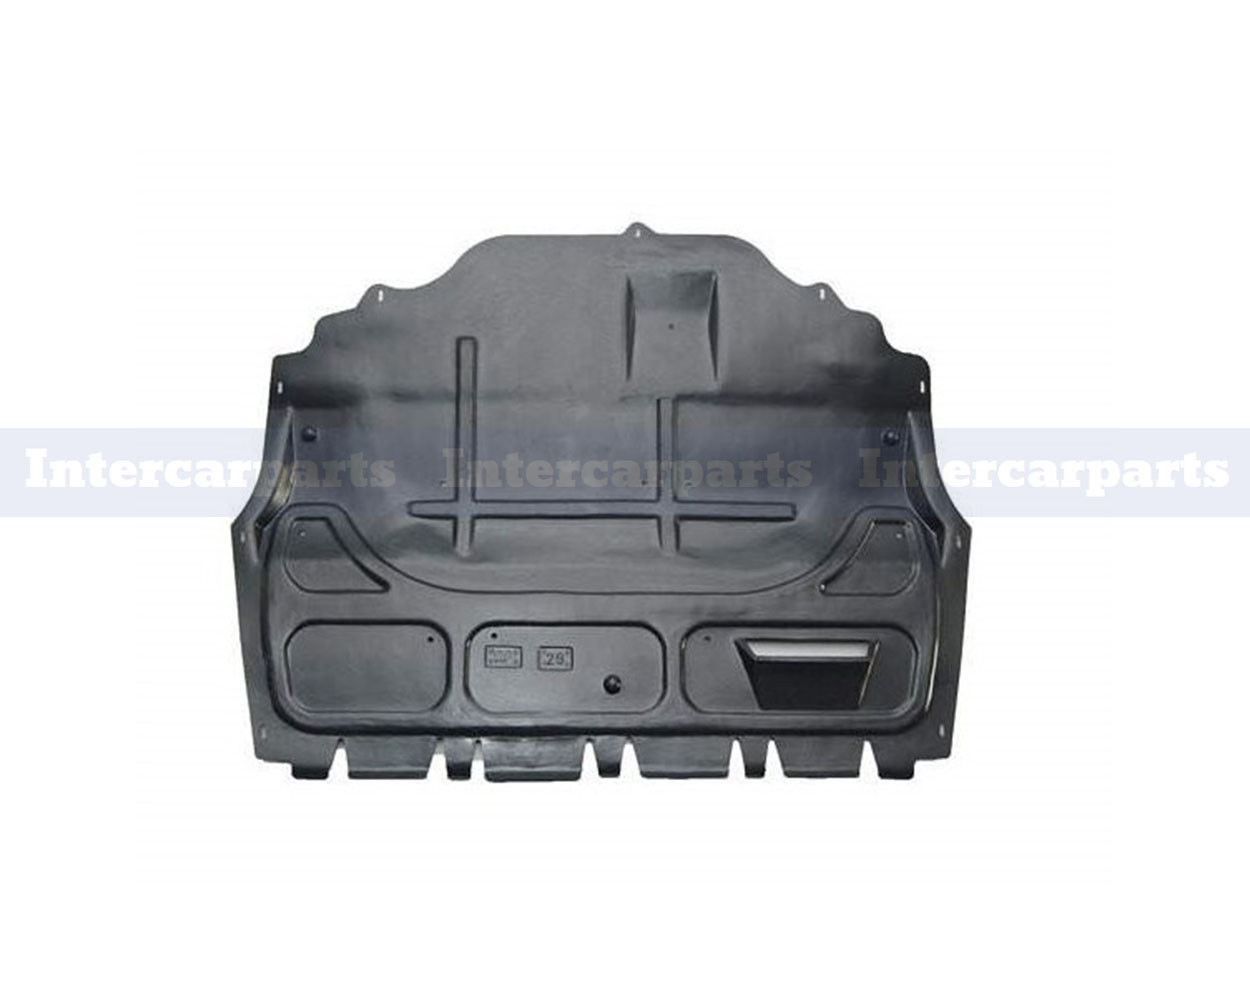 VW Polo 6R Audi A1 TDI Seat Ibiza Diesel Lower Engine Undertray Cover Brand New